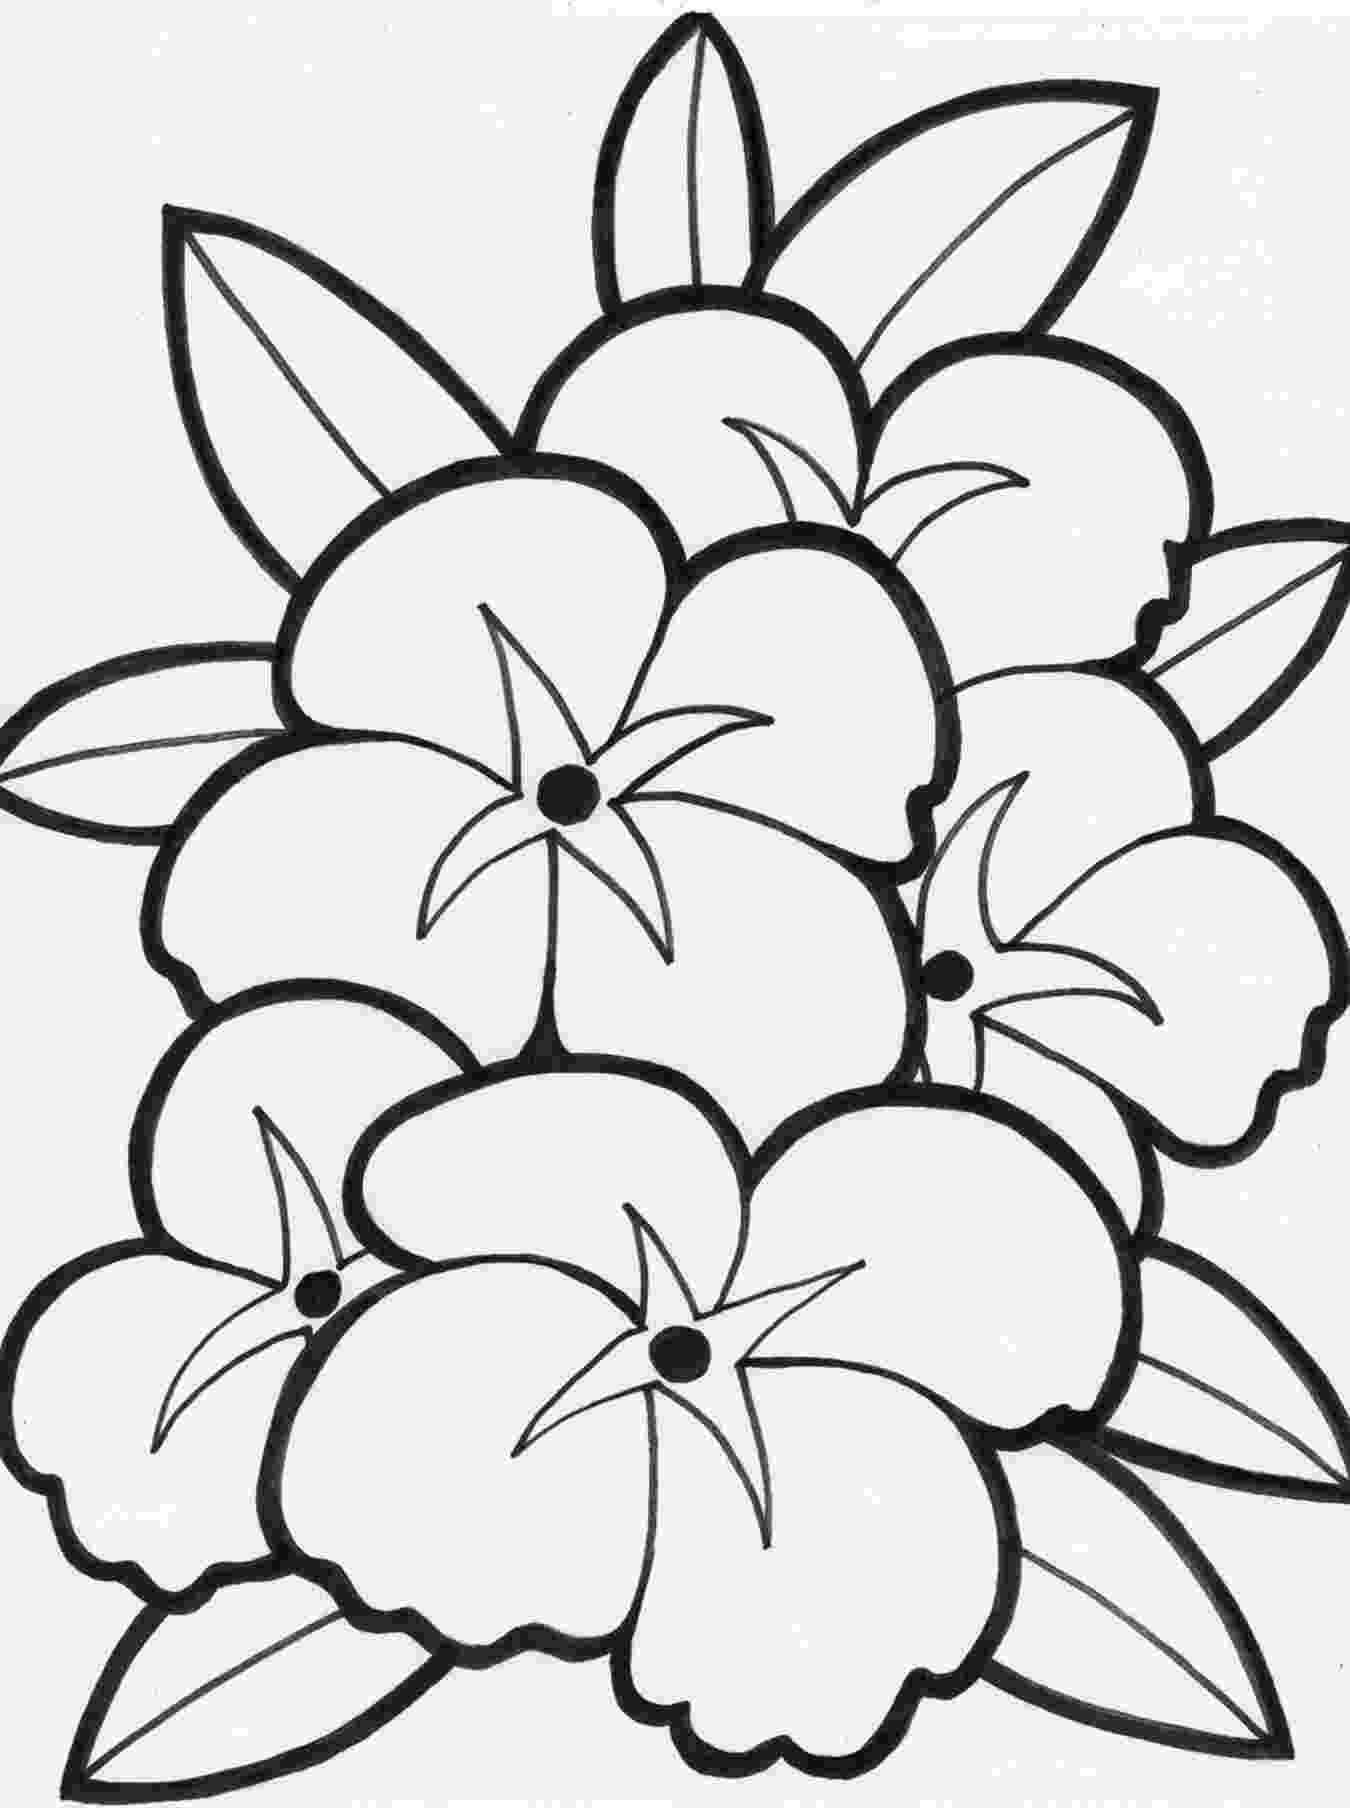 pics of roses to color free printable roses coloring pages for kids to roses pics color of